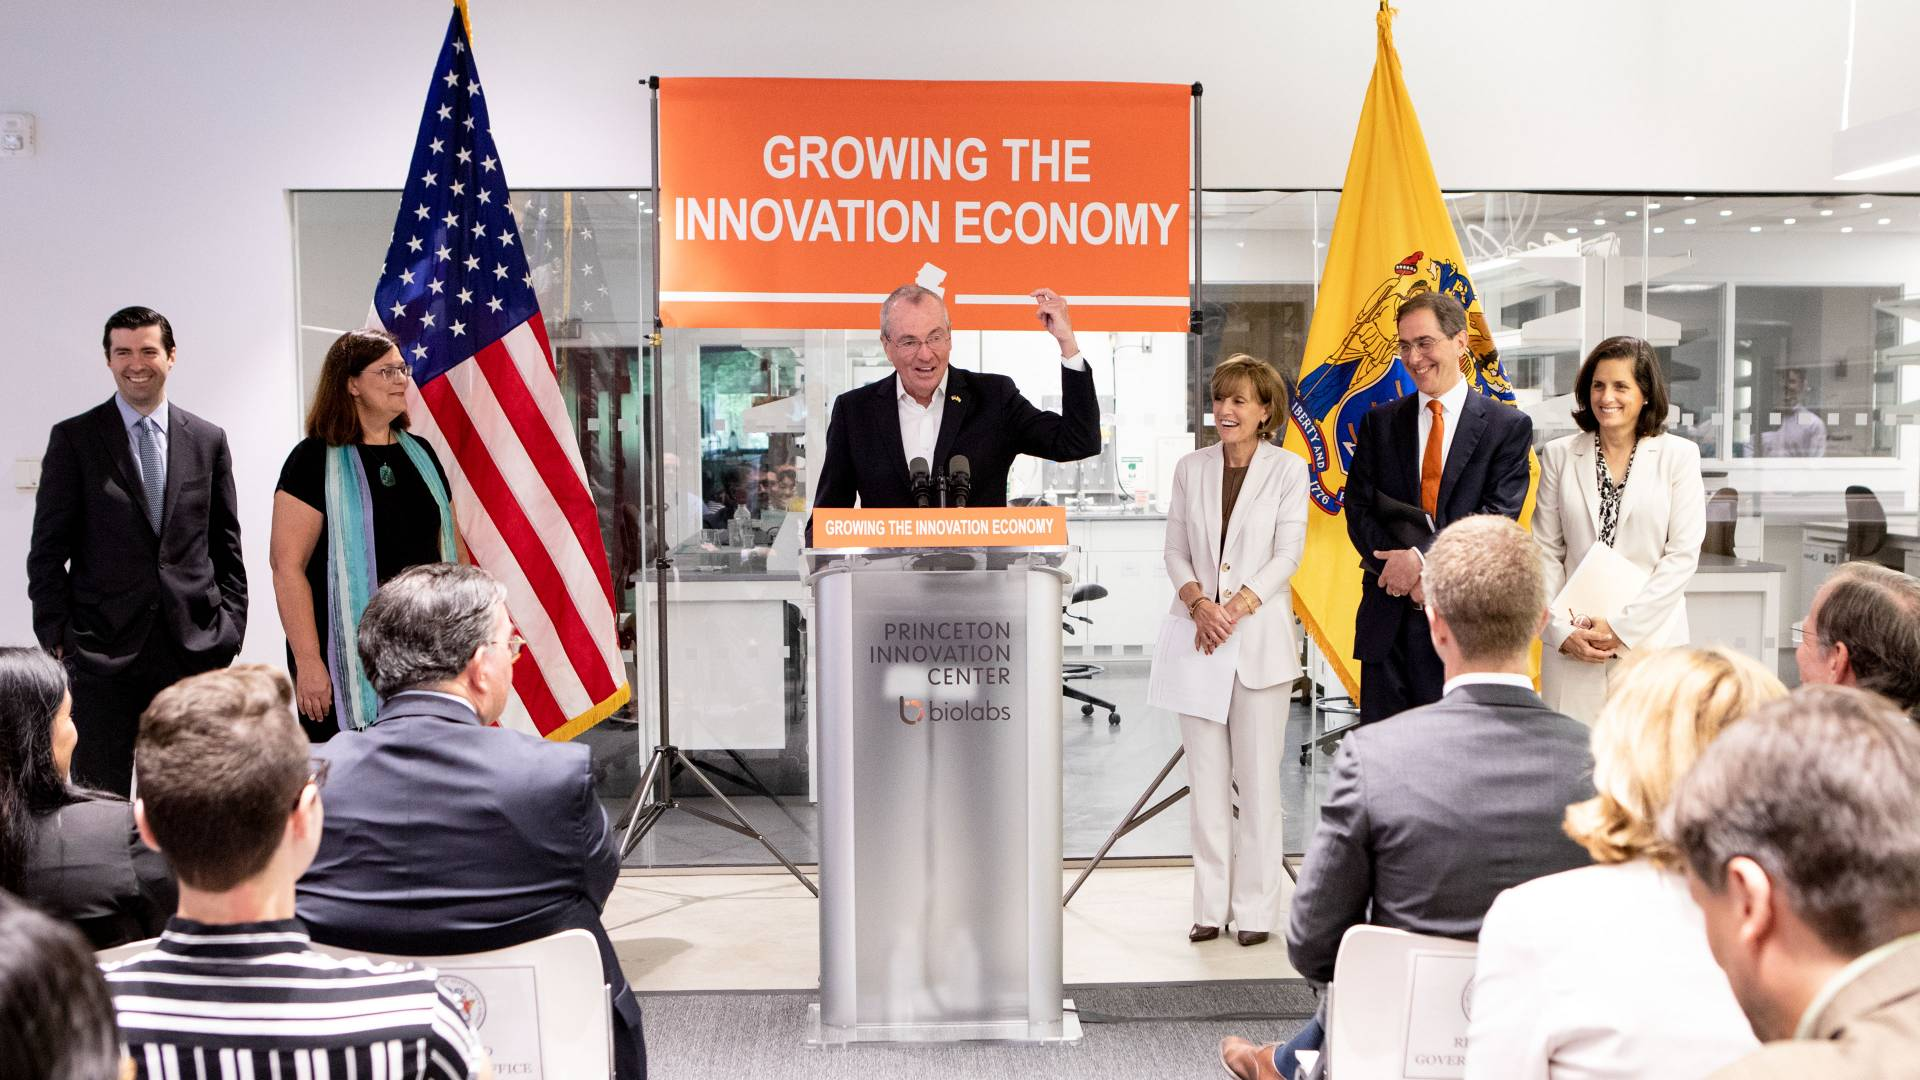 NJ Governor speaking at press conference at Princeton BioLabs